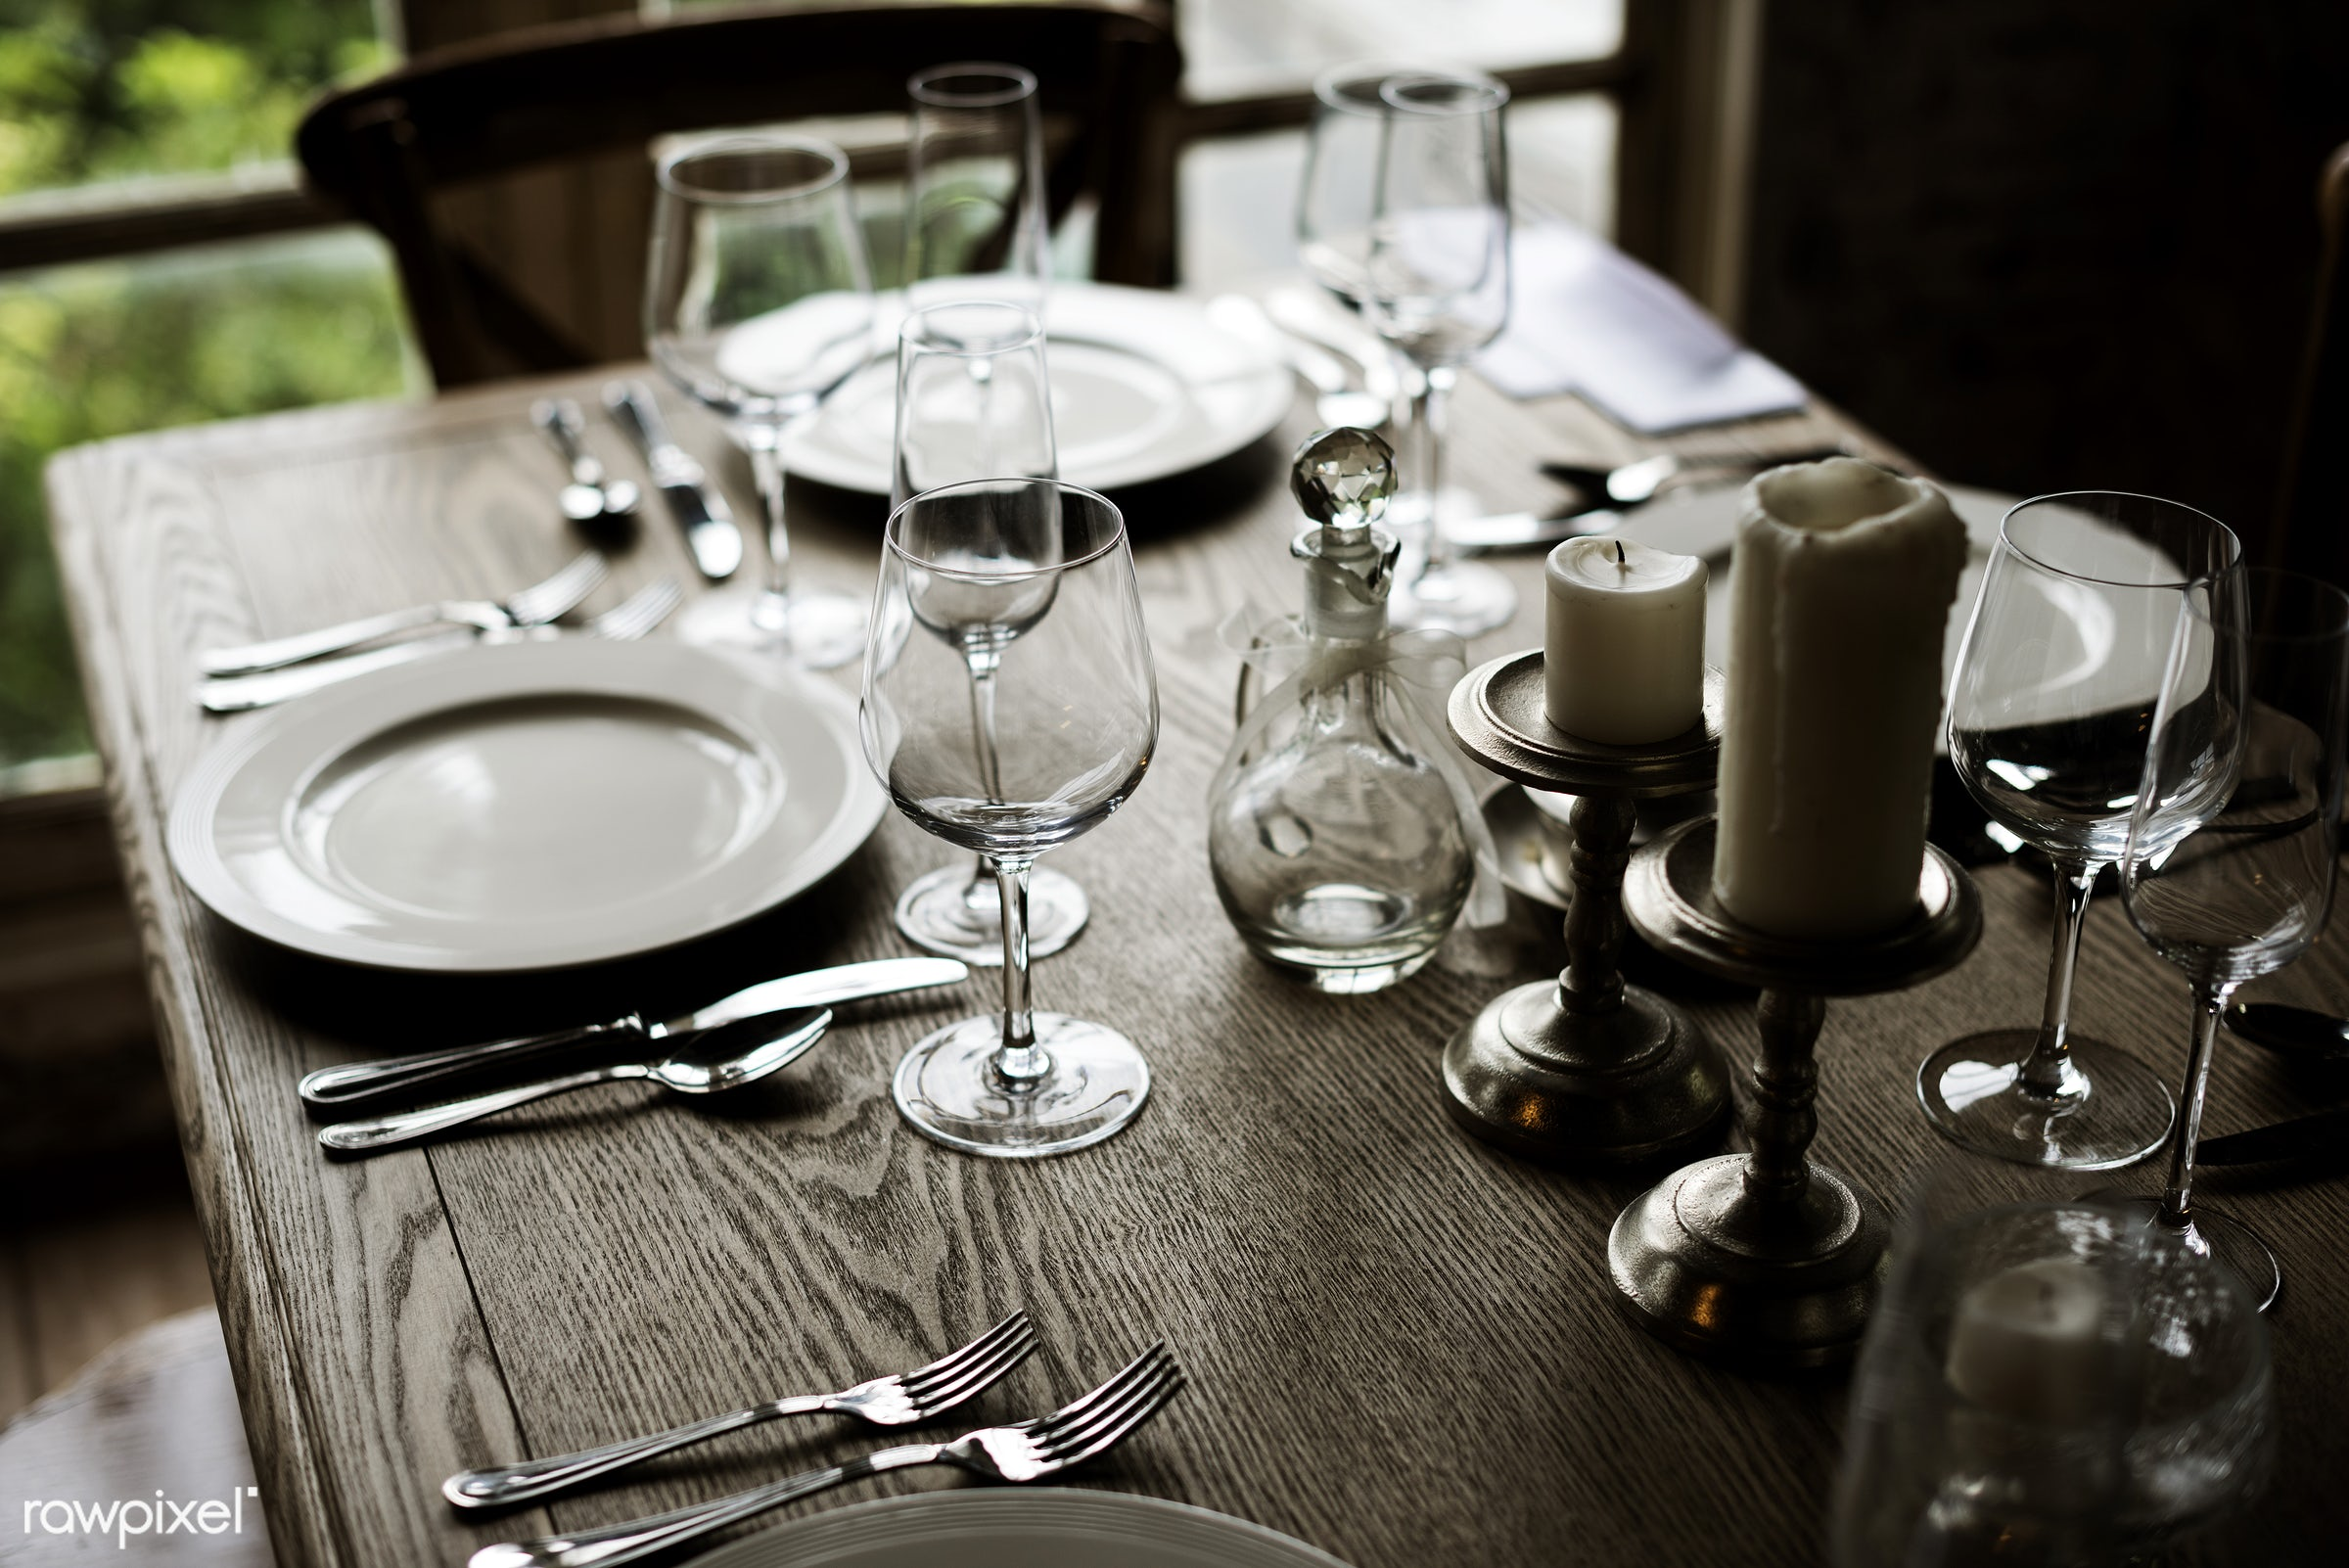 cuisine, catering, exclusive, party, restaurant, private, setting, event, fine, meal, information, announcement, preparation...